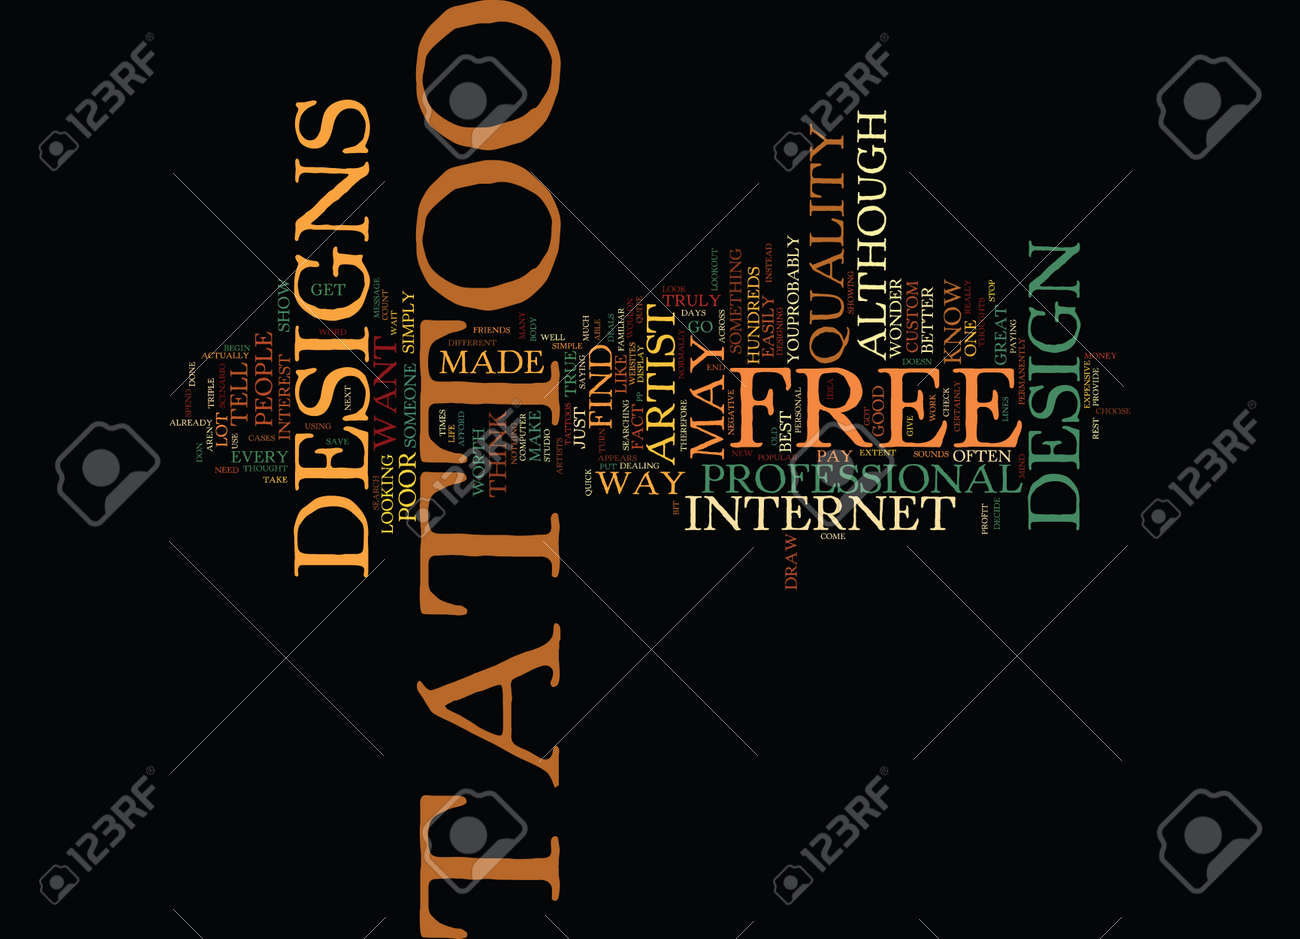 Free Tattoo Designs Text Background Word Cloud Concept Royalty Free